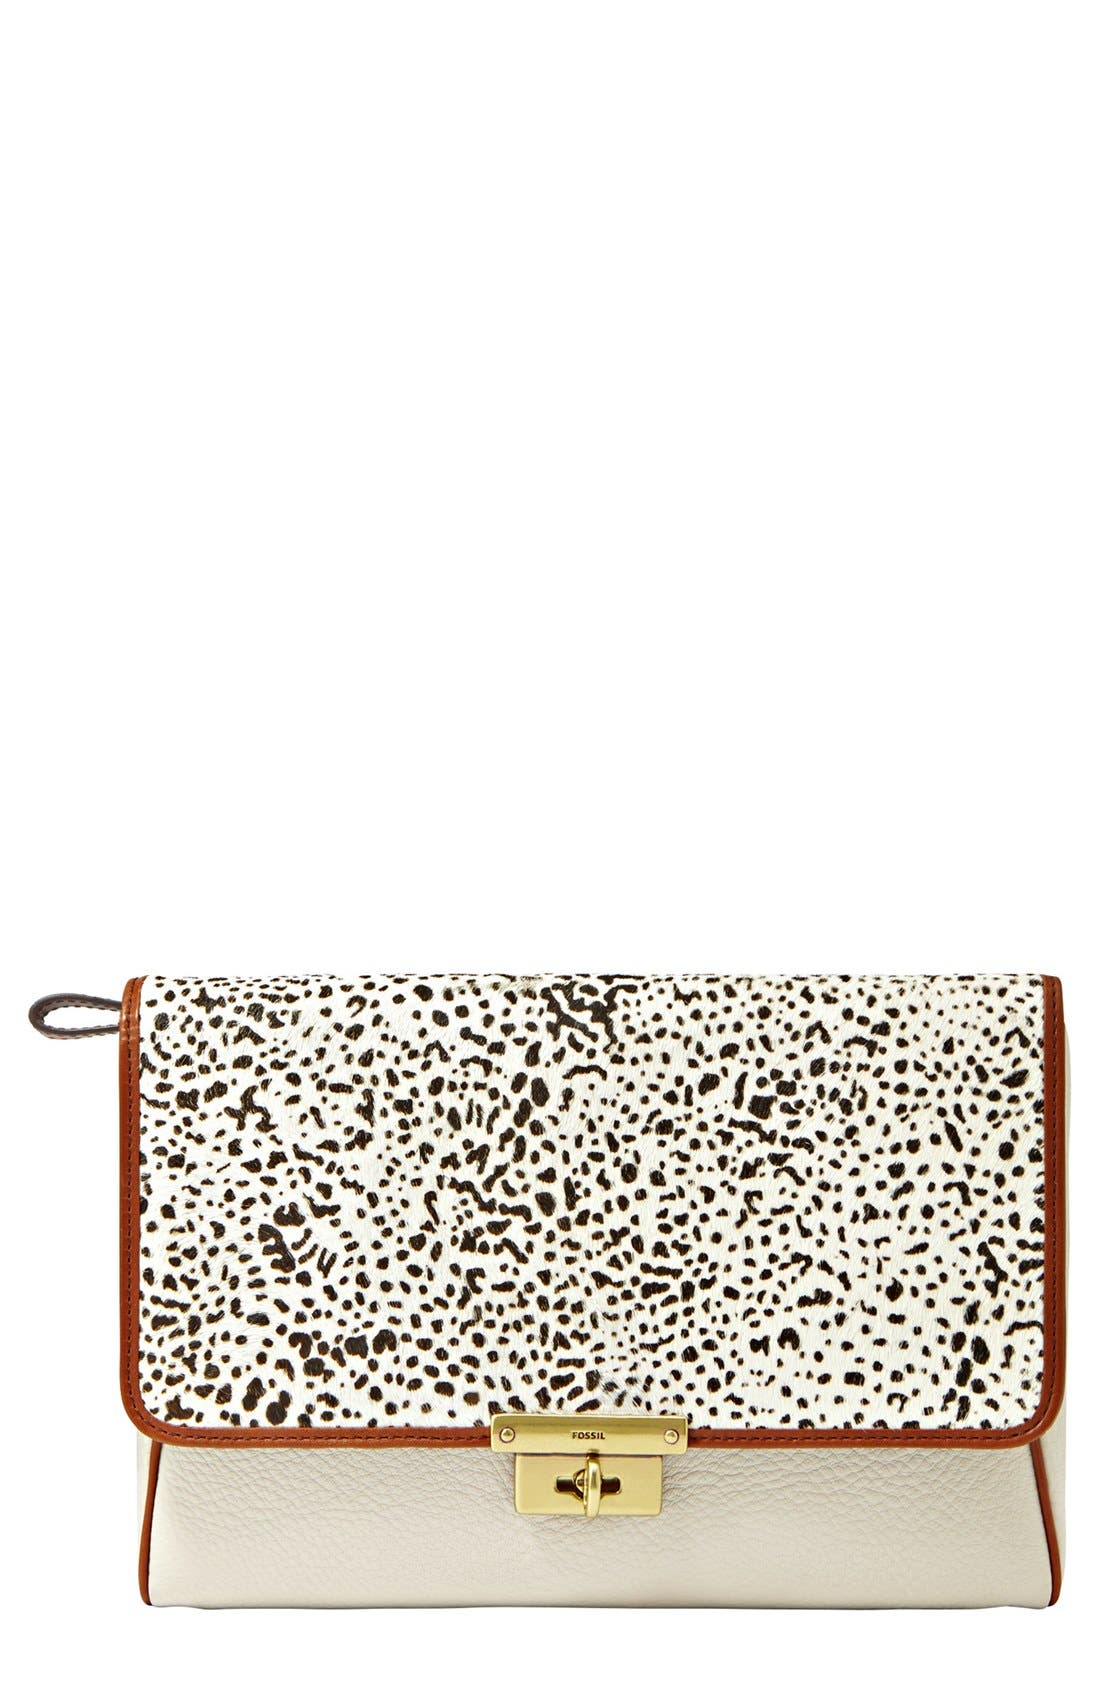 Alternate Image 1 Selected - Fossil 'Memoir' Genuine Calf Hair Clutch